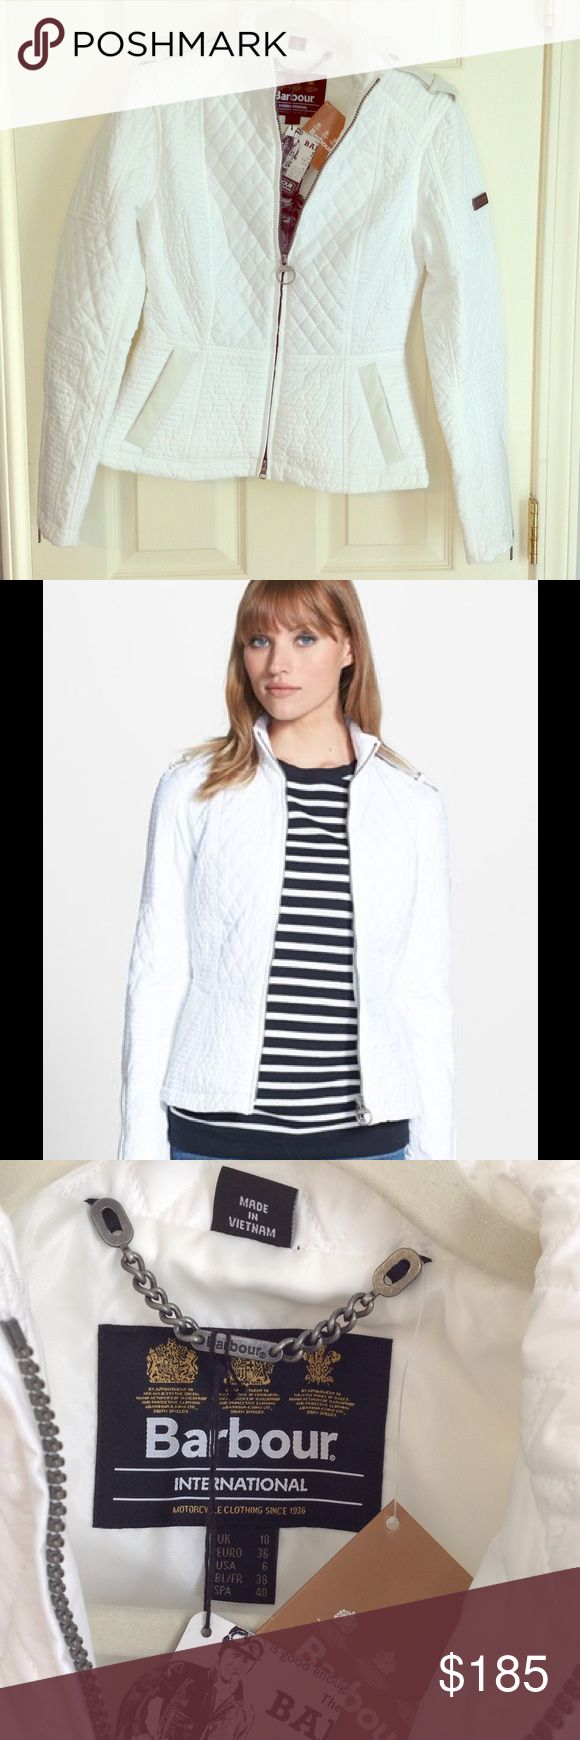 New Barbour Intl Extractor Quilted Jacket Brand new with tags and never worn white Barbour International Jacket in USA Size 6. Sold Out! Barbour Jackets & Coats